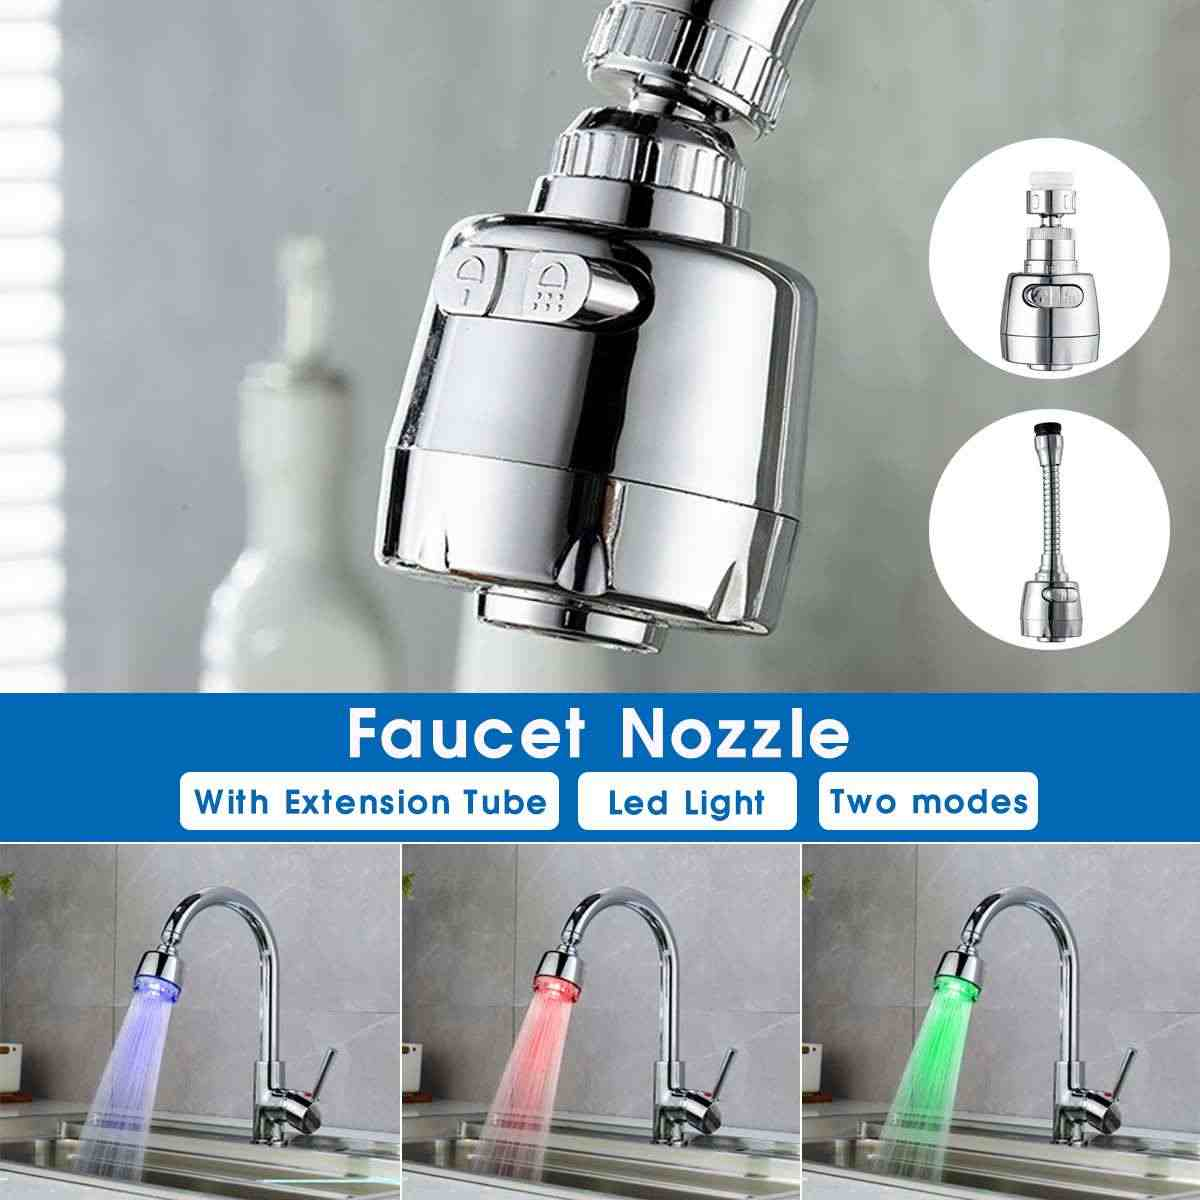 LED Light 7 colors Water Saving ABS Faucet Aerators Water Tap Nozzle Filter splash-proof Faucets bubbler for Kitchen Bathroom